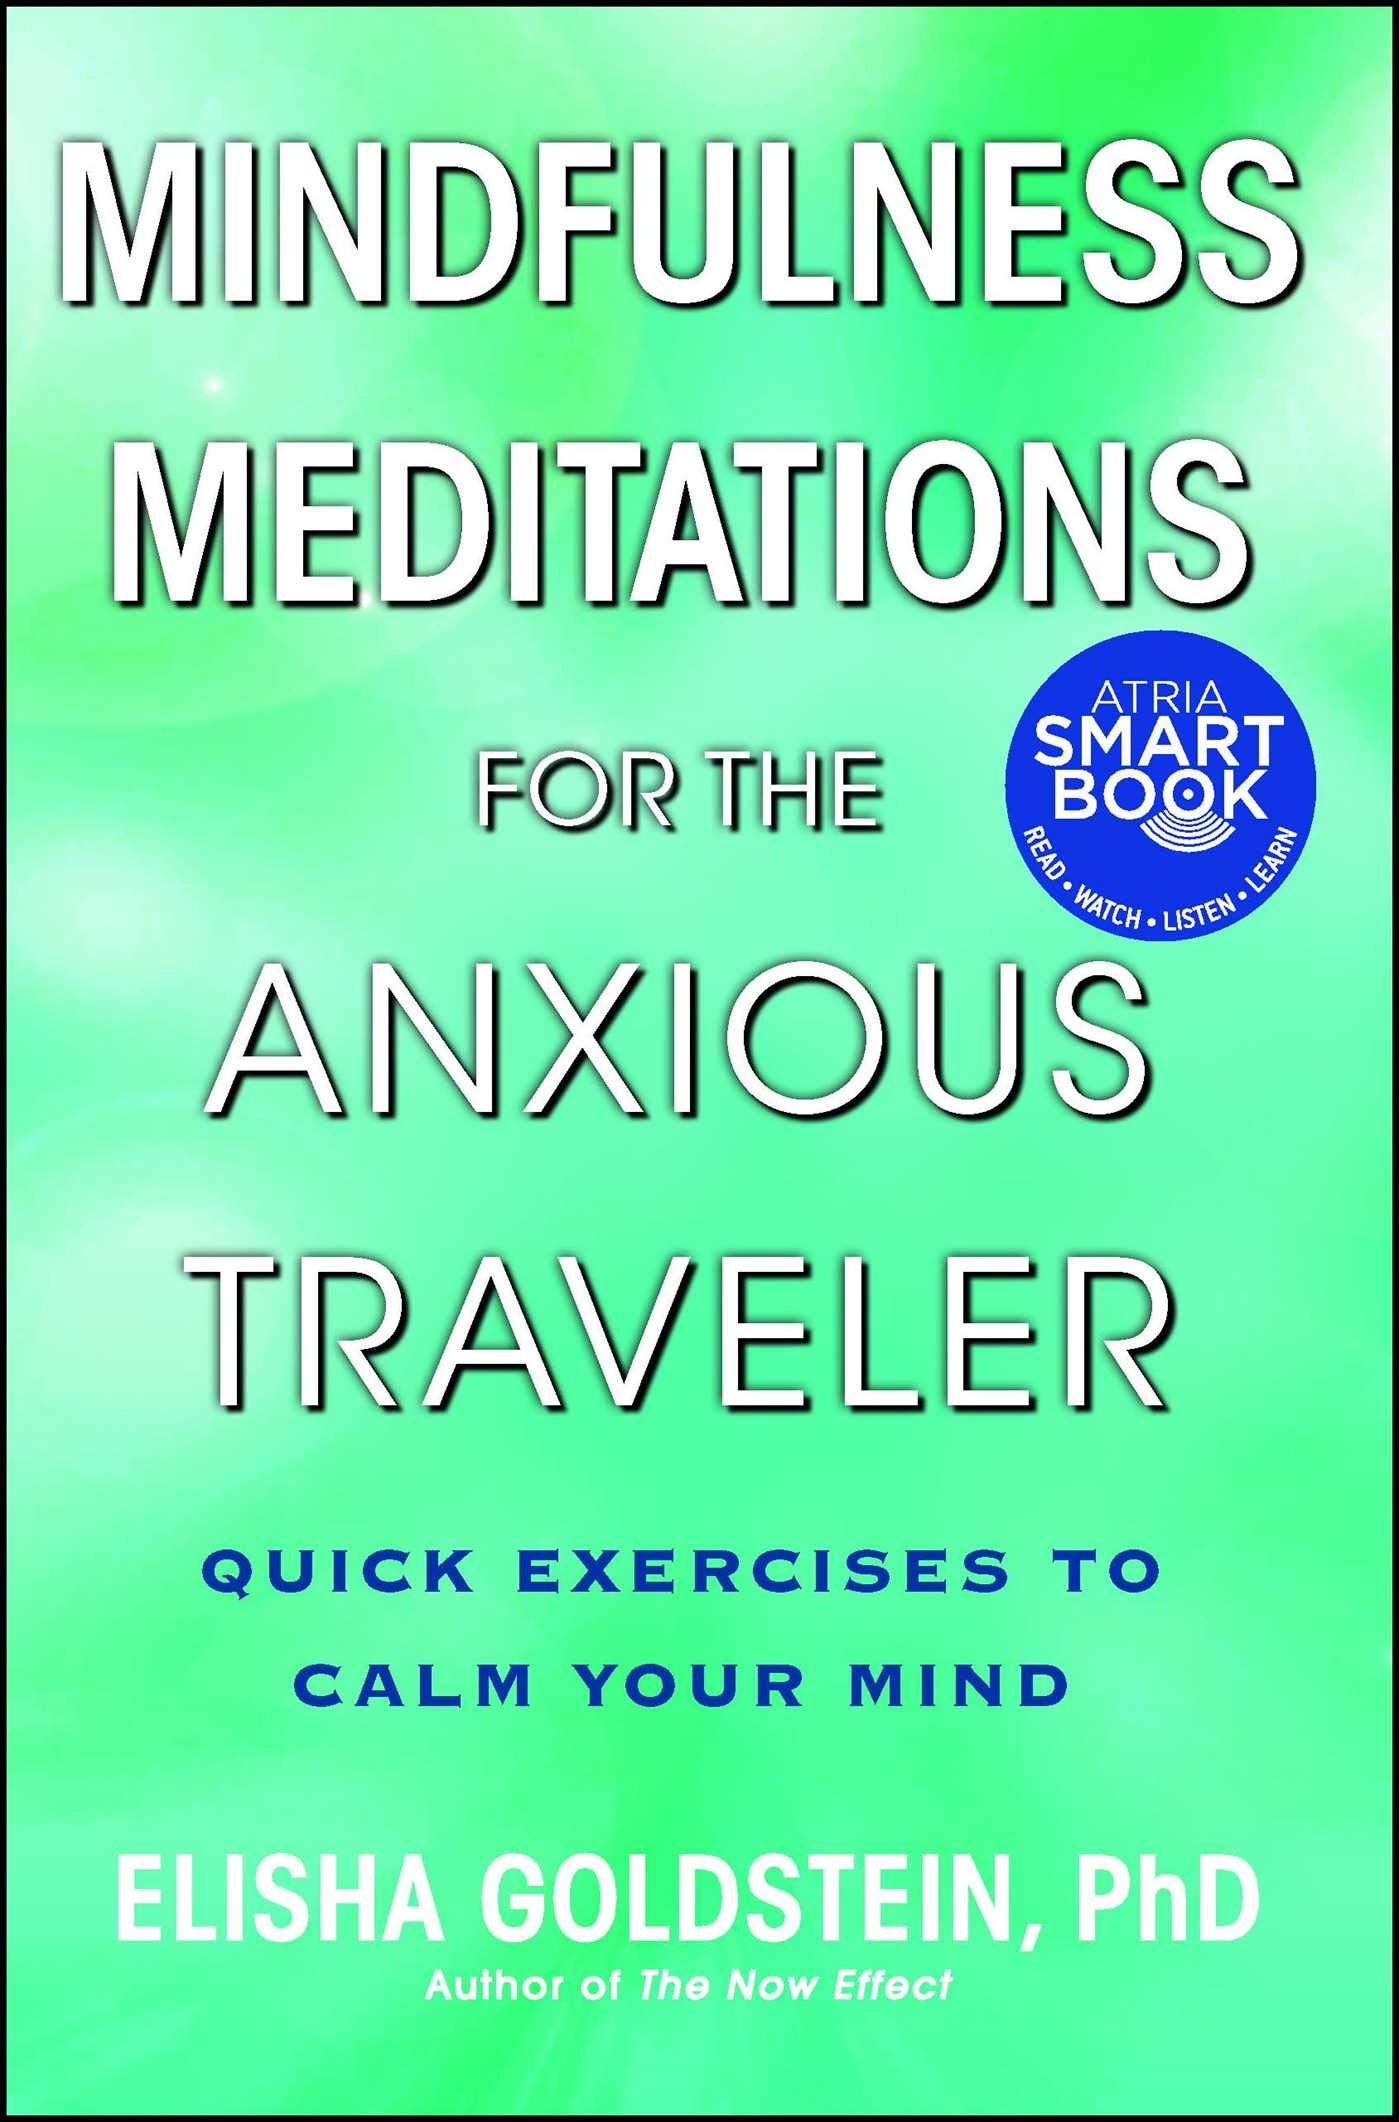 Download Mindfulness Meditations For The Anxious Traveler: Quick Exercises To Calm Your Mind 